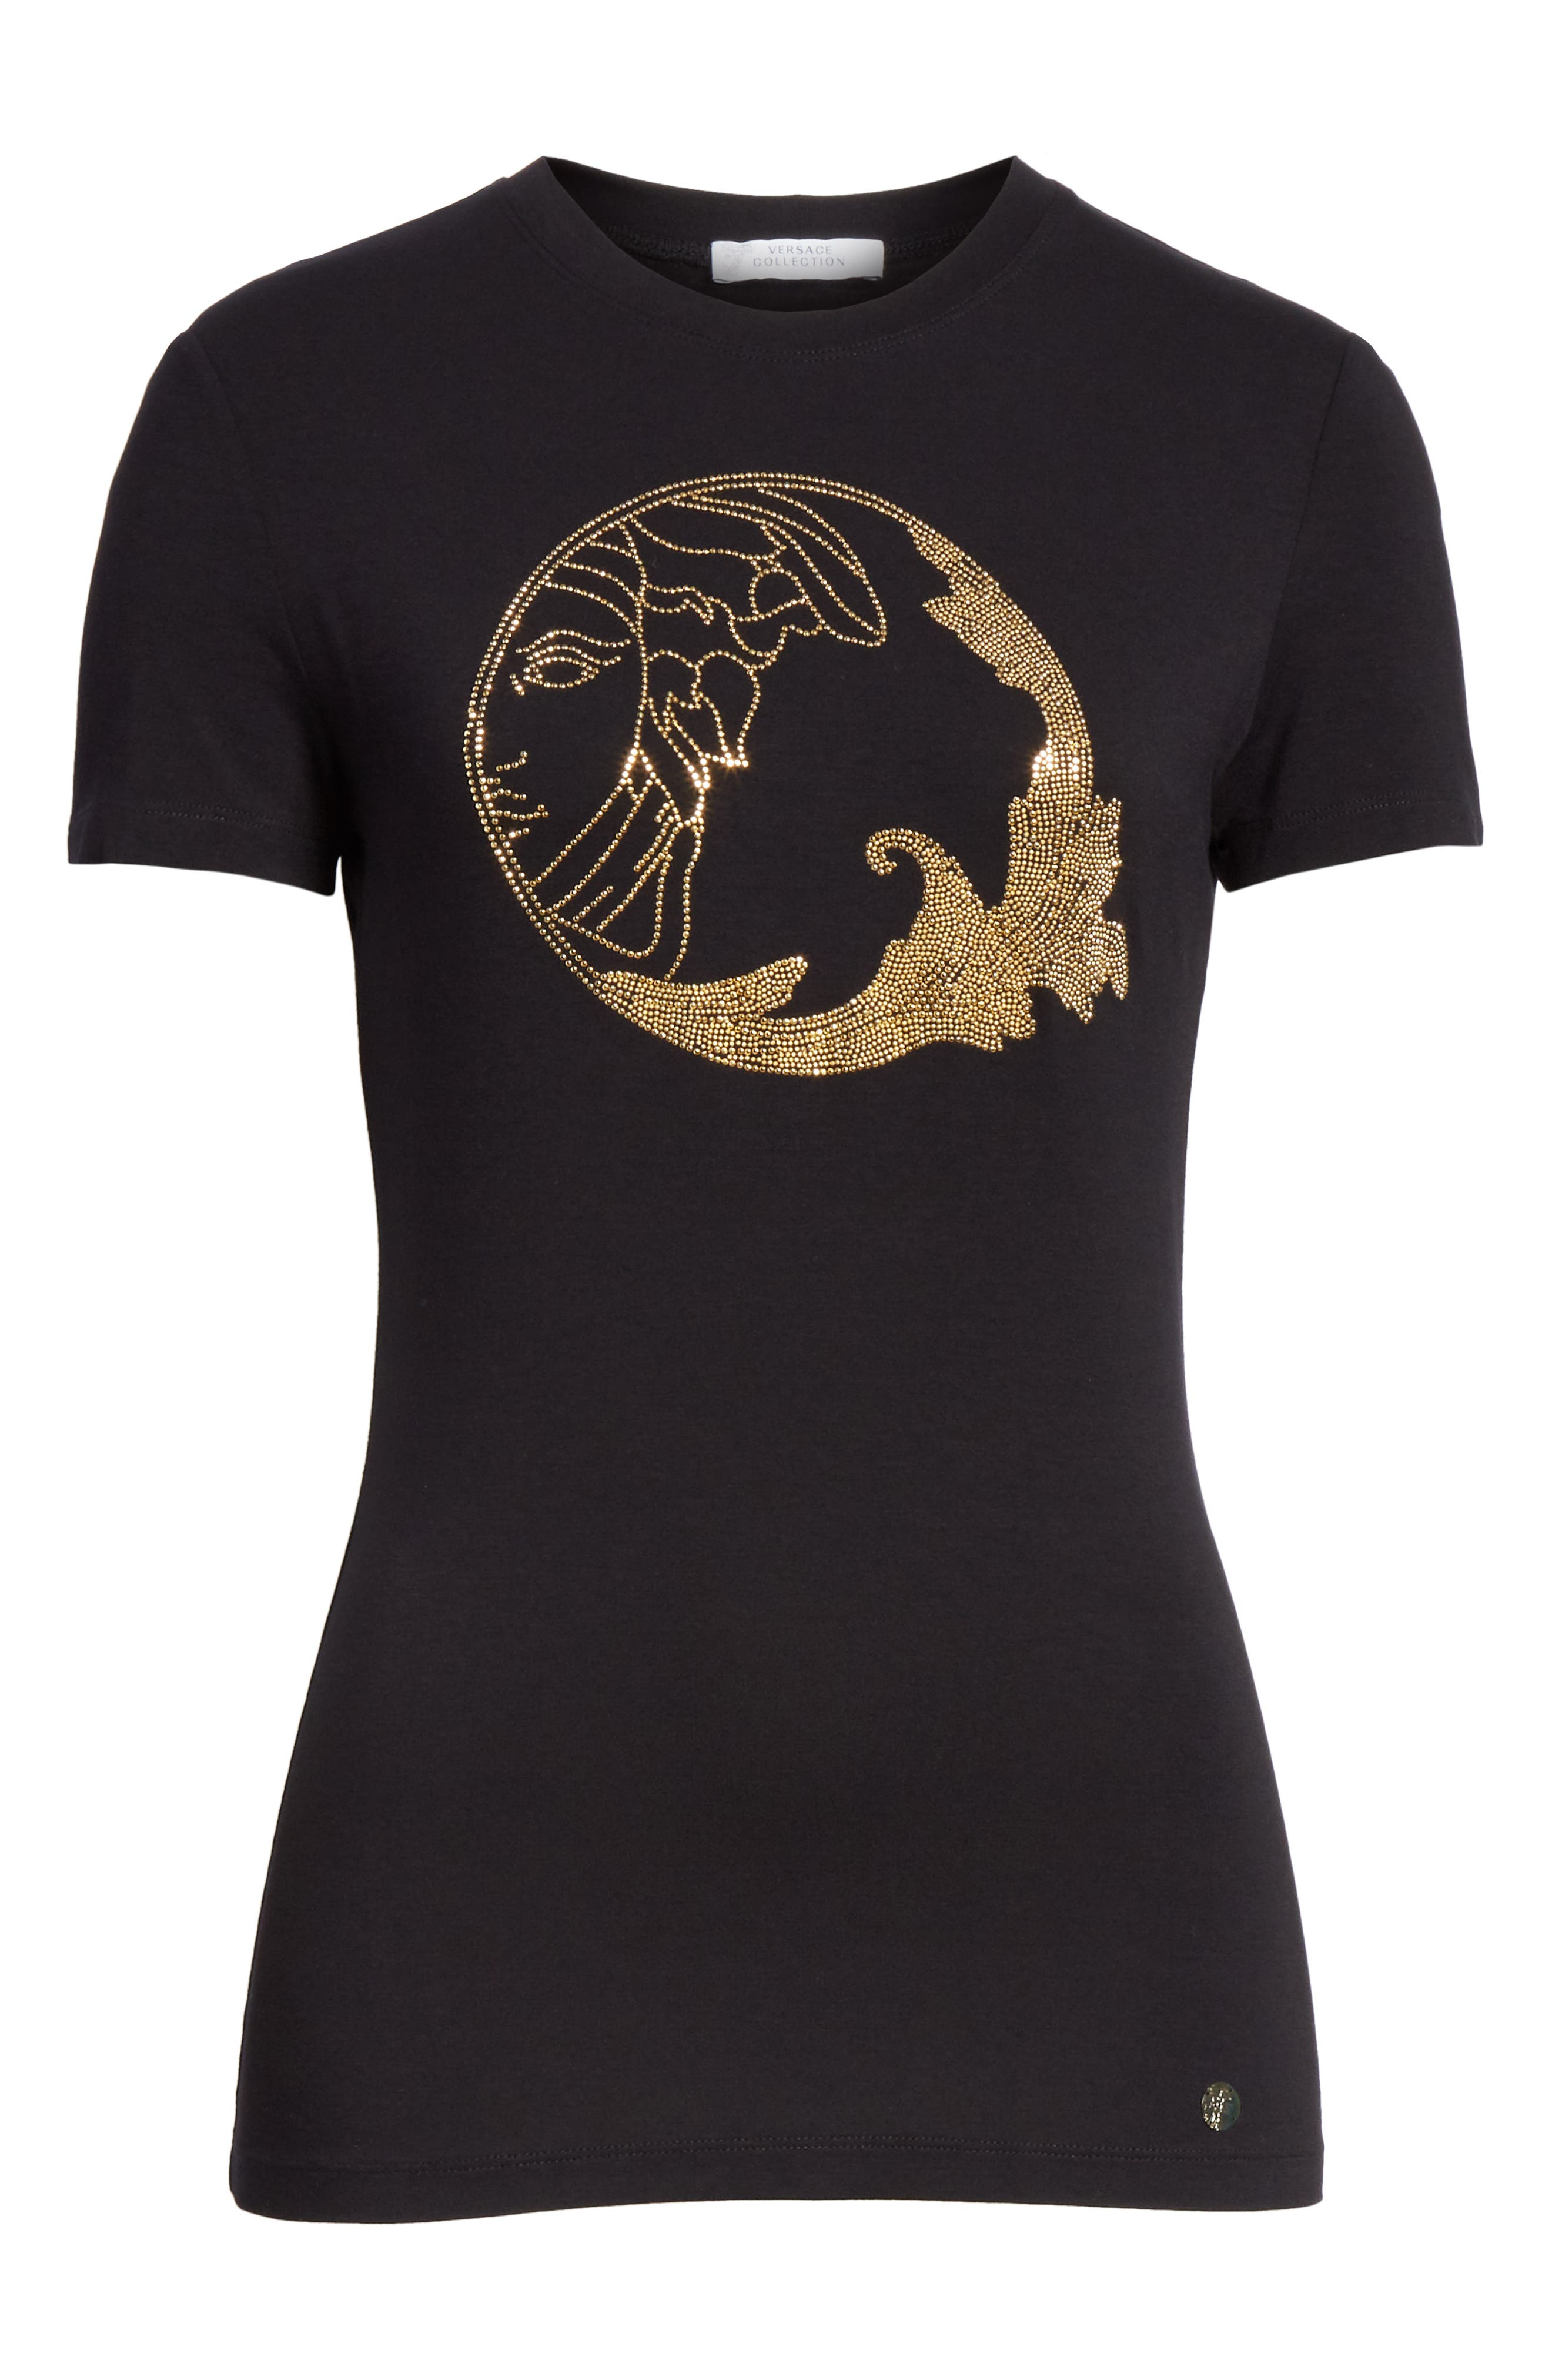 VERSACE COLLECTION, Medusa Crystal Embellished Jersey Tee, Alternate thumbnail 6, color, BLACK